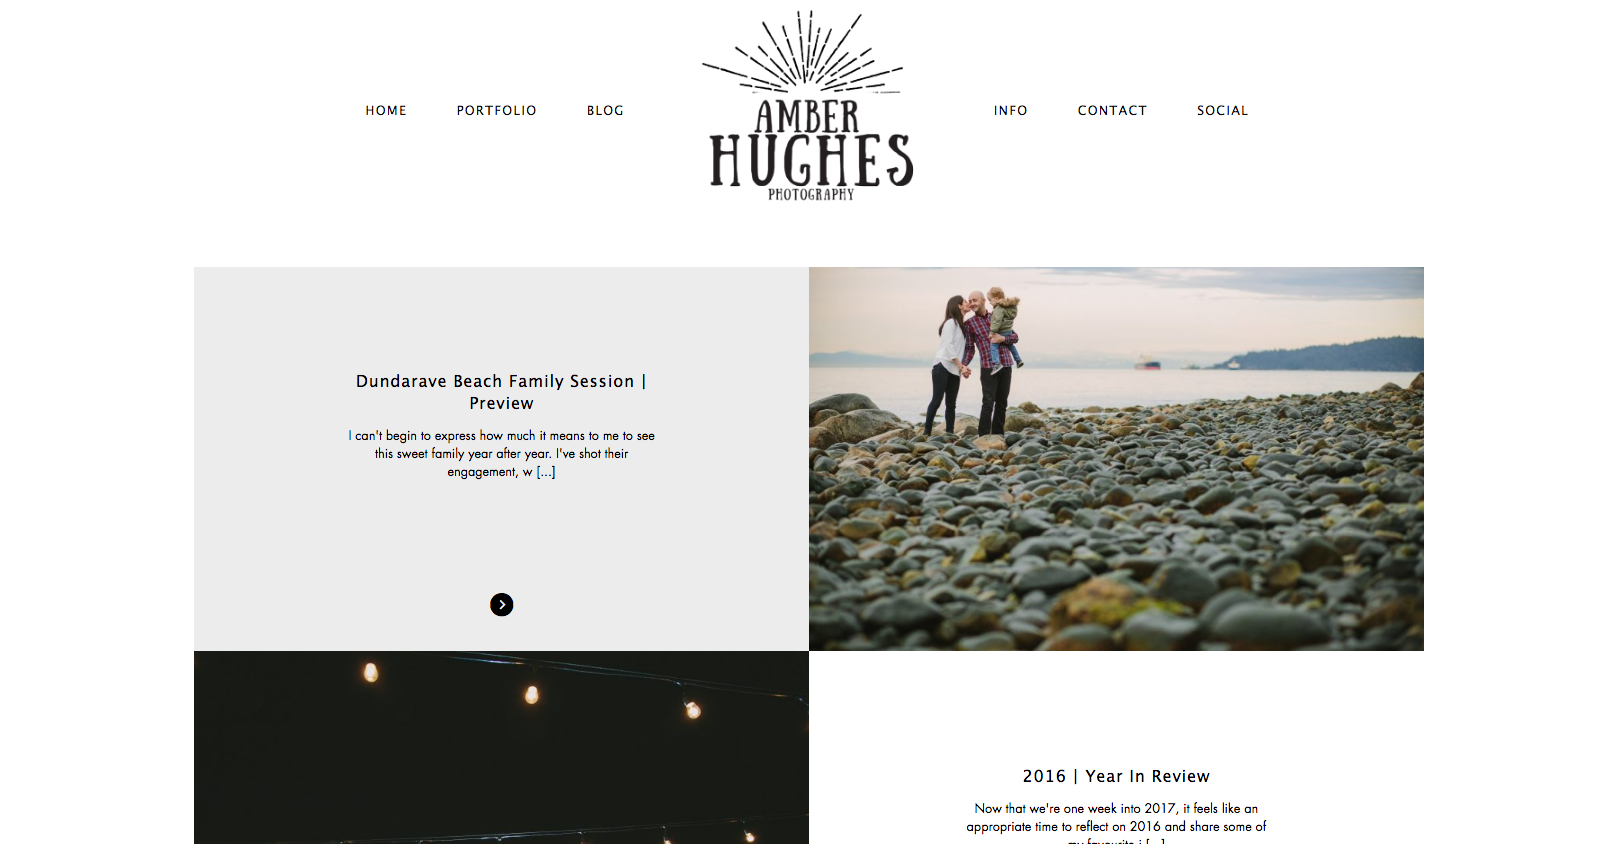 Vancouver Wedding Photographer Amber Hughes Website